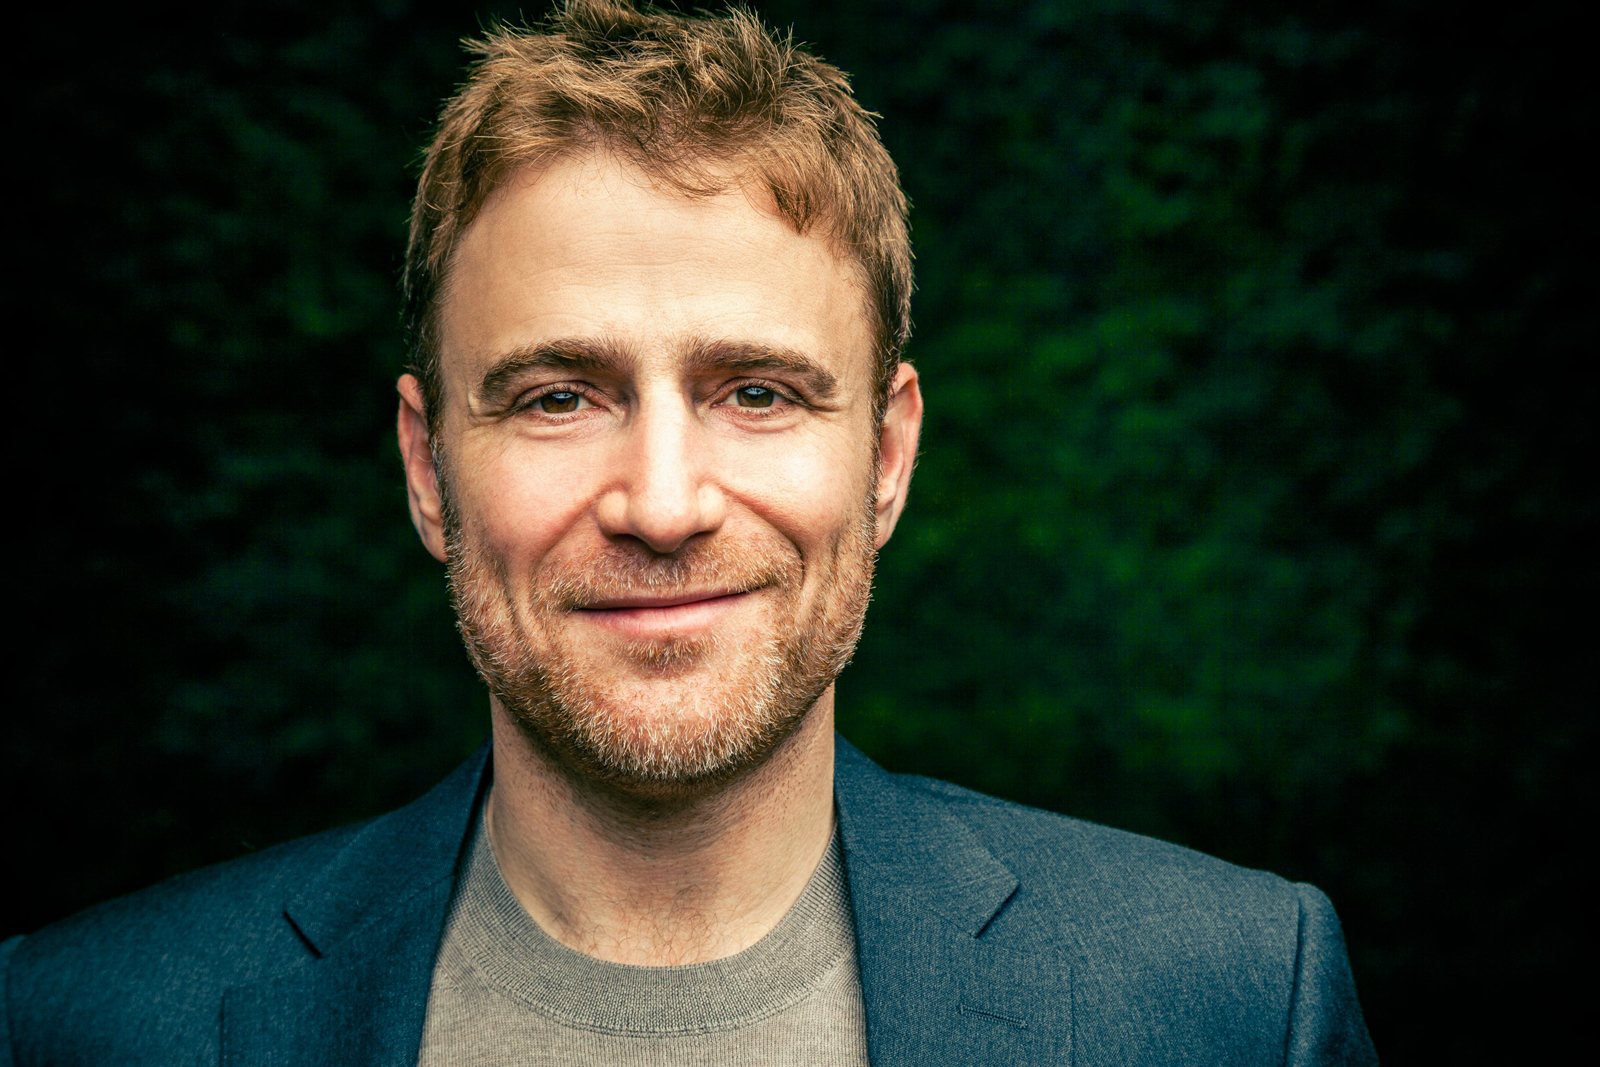 Stewart Butterfield, CEO Slacku